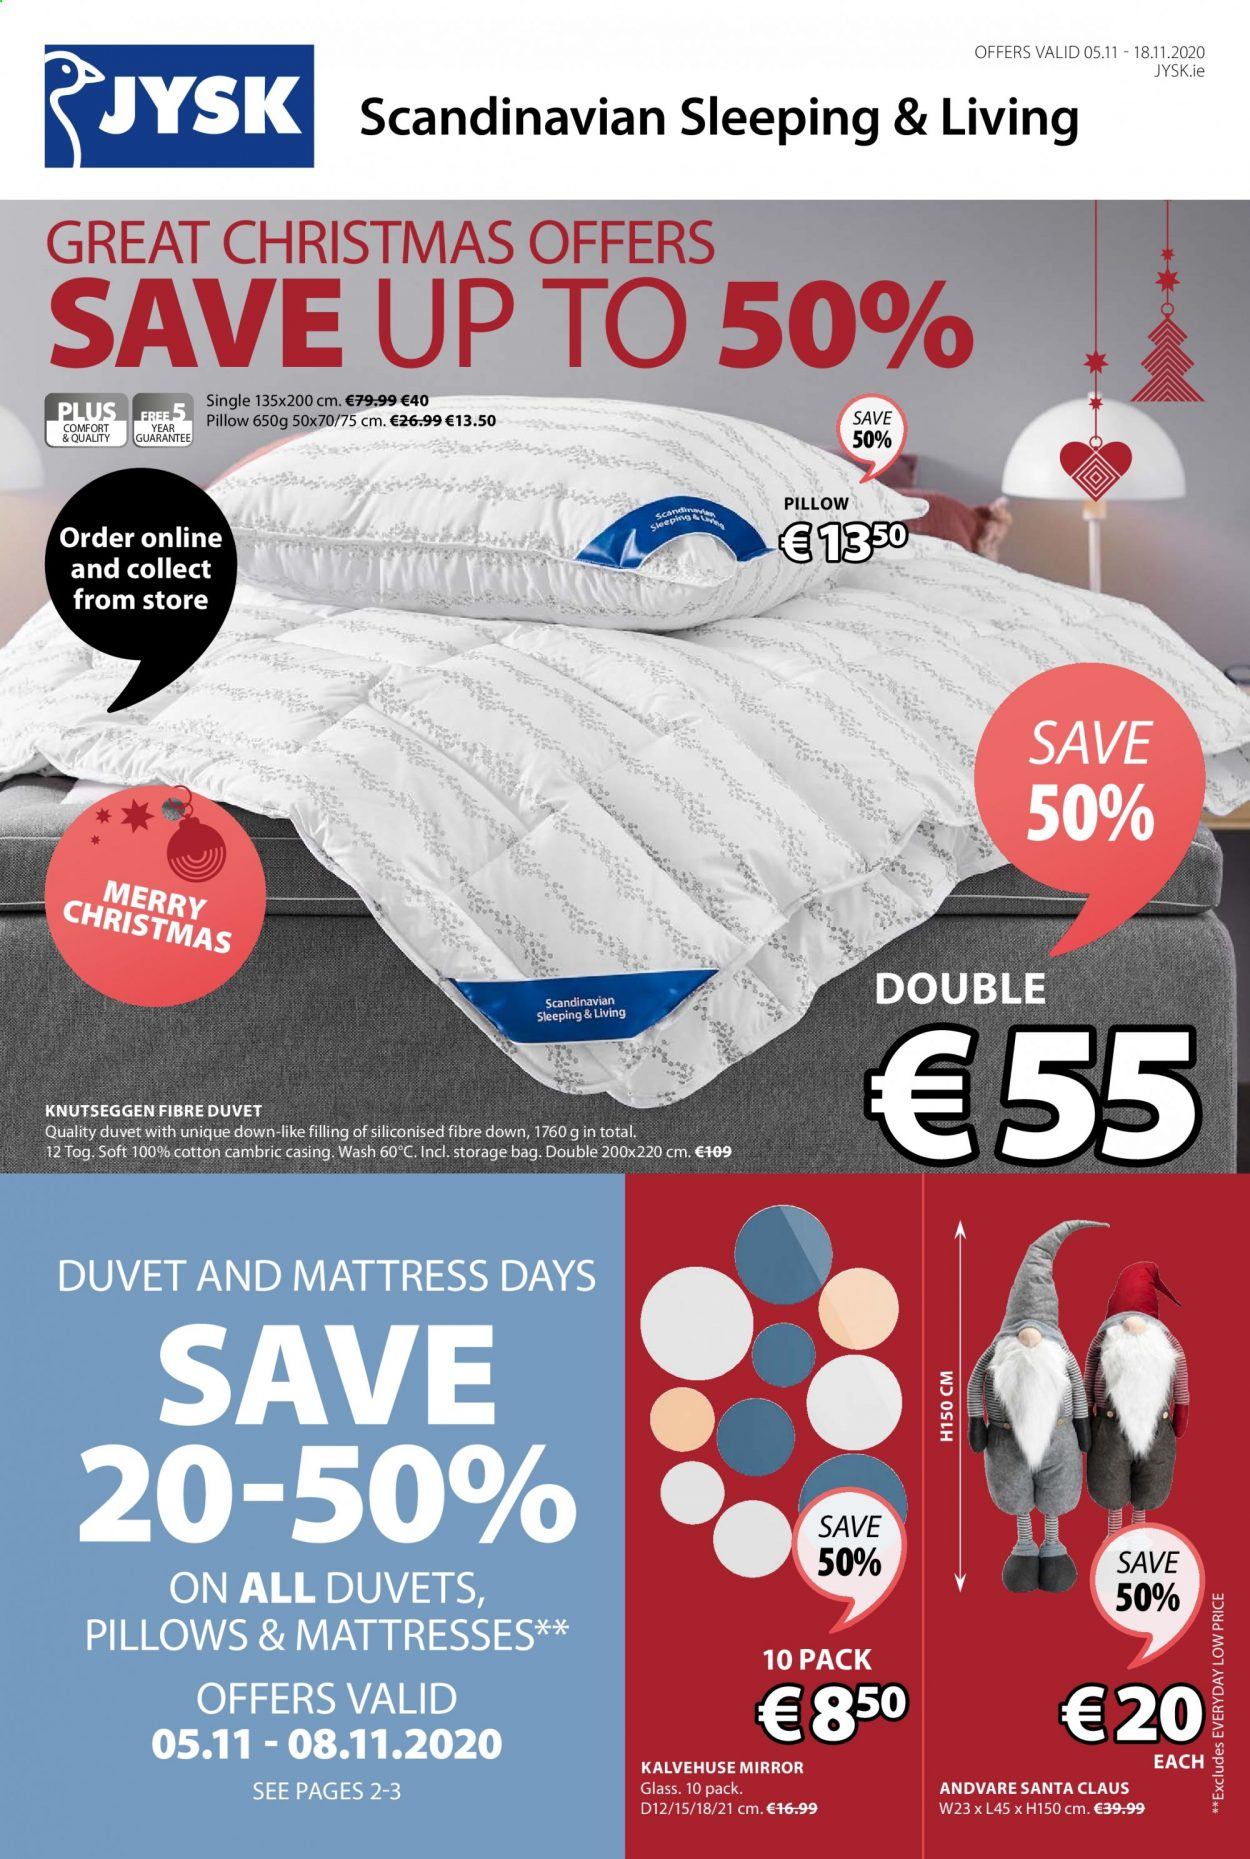 JYSK offer  - 5.11.2020 - 18.11.2020 - Sales products - duvet, glass, mattress, mirror, santa claus, pillow, storage bag. Page 1.